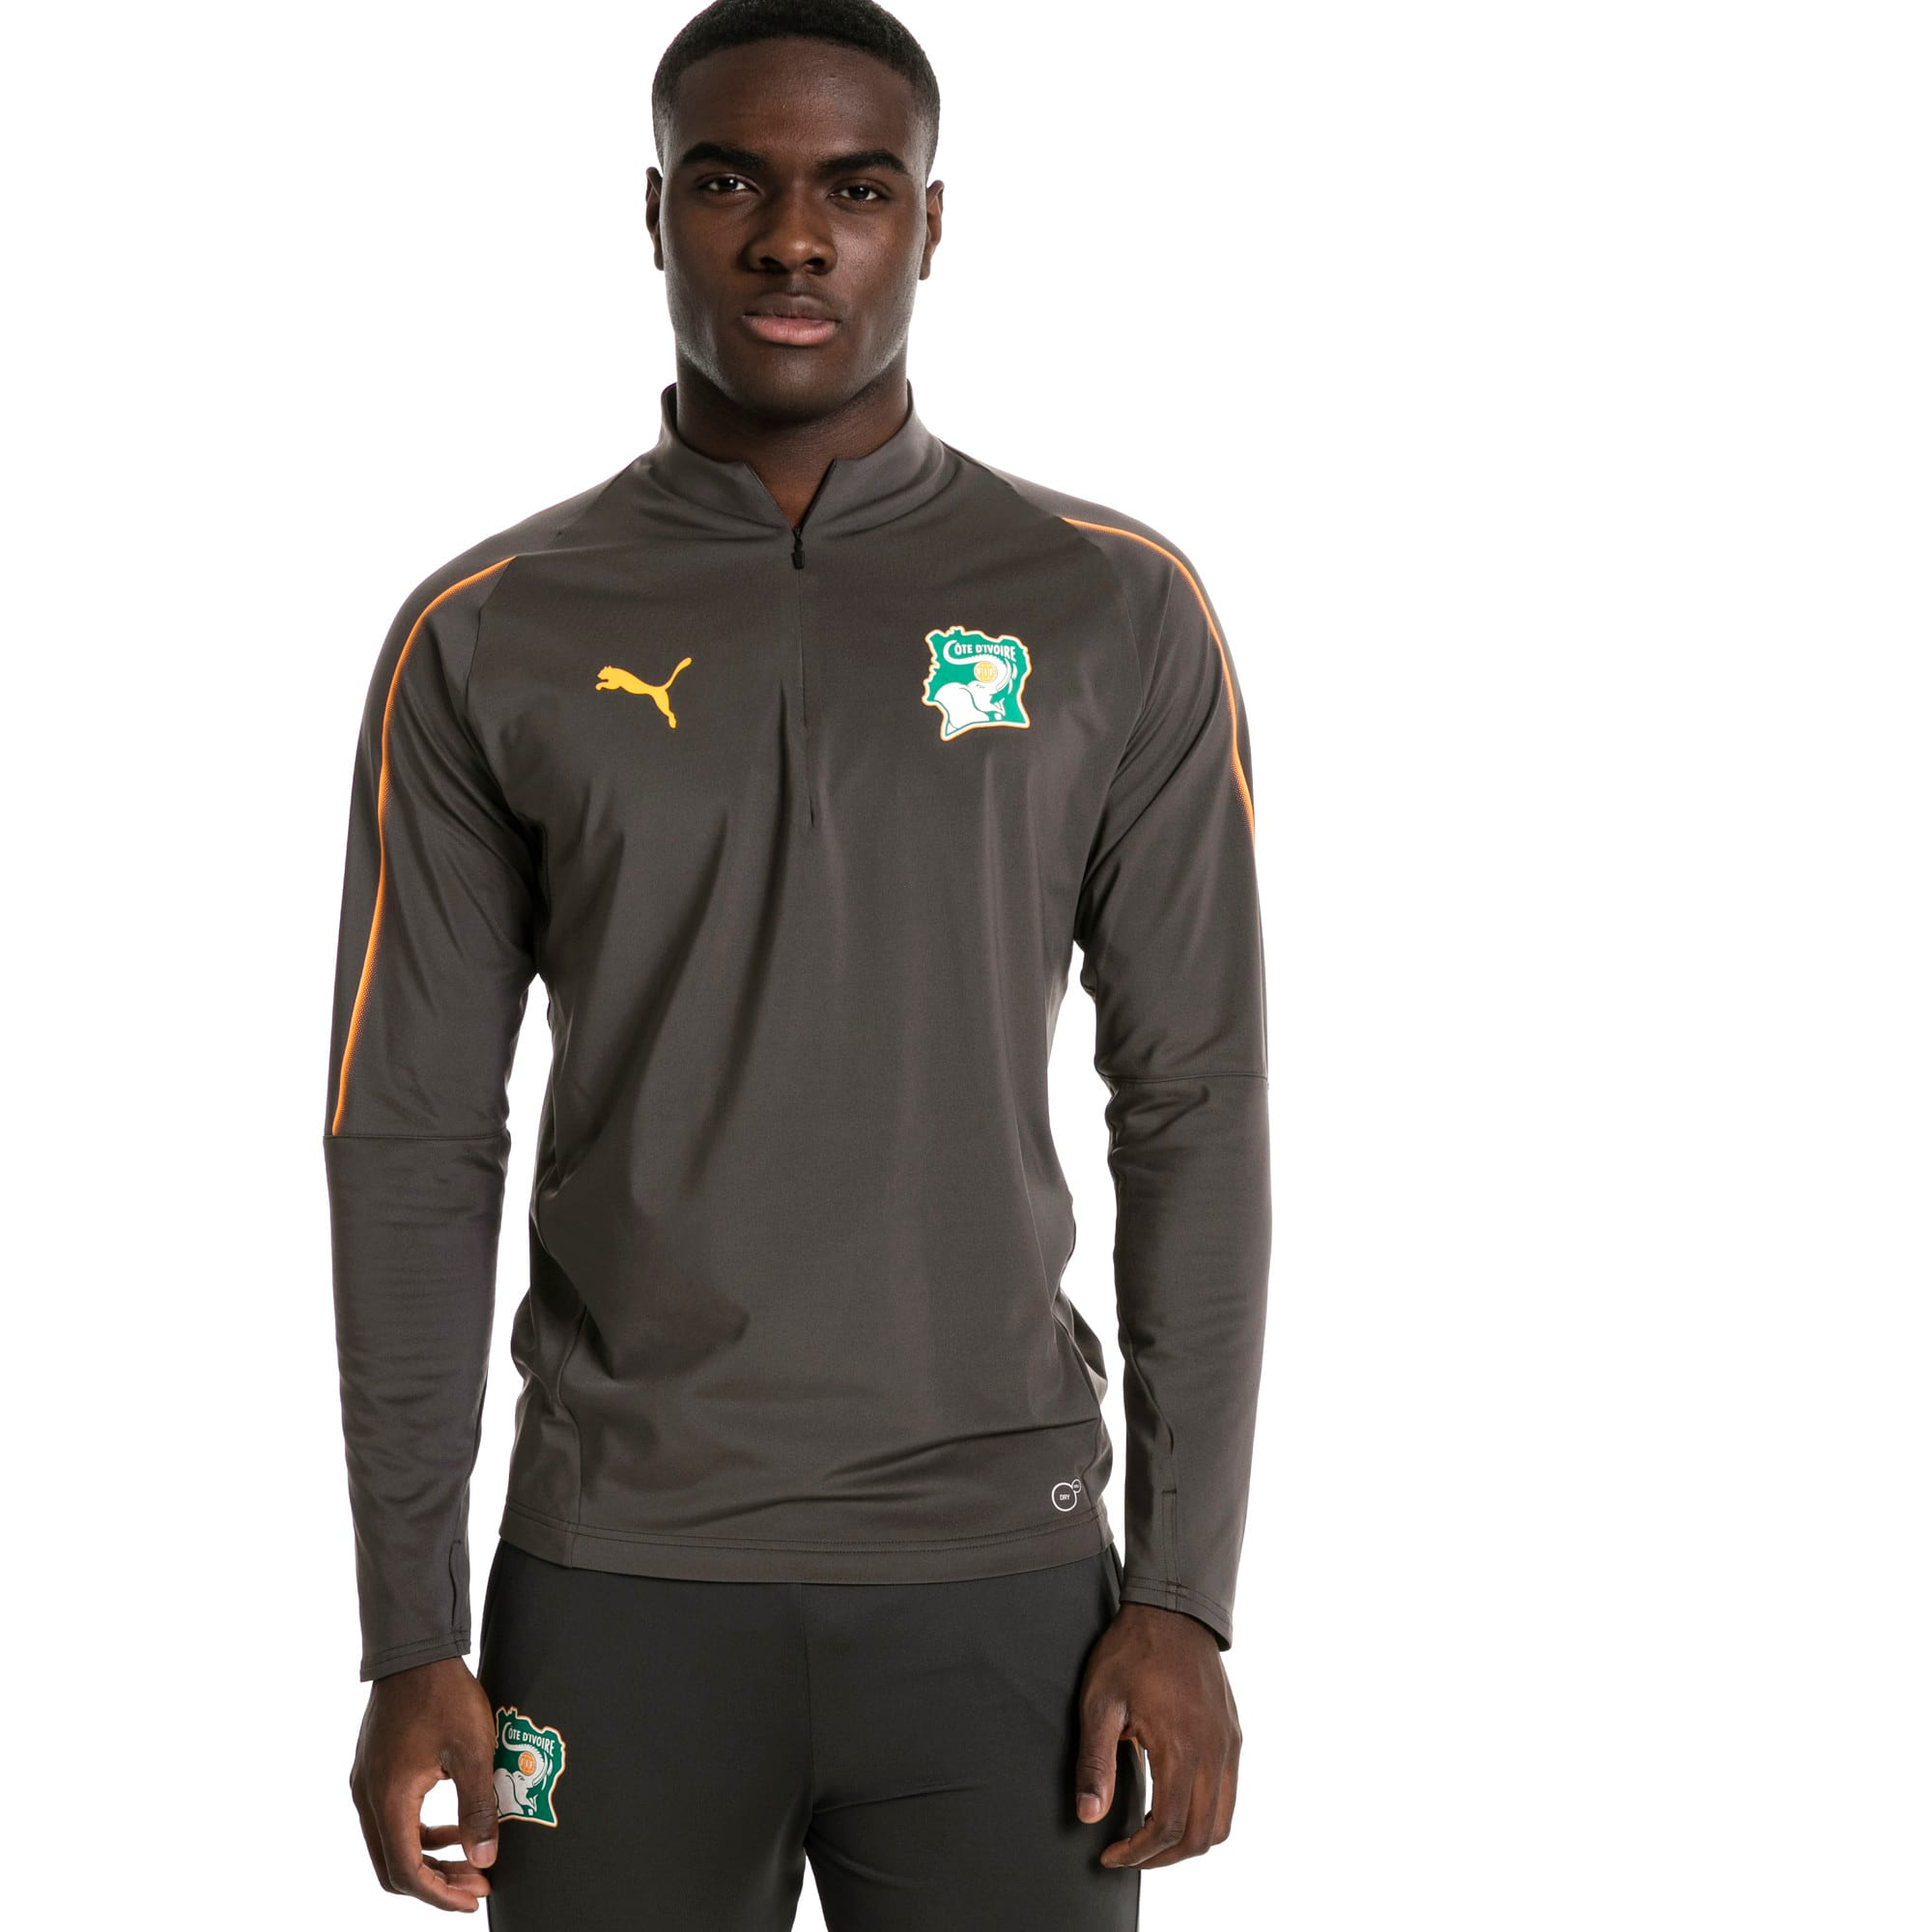 Thumbnail 2 of Ivory Coast 1/4 Zip Training Top, Asphalt, medium